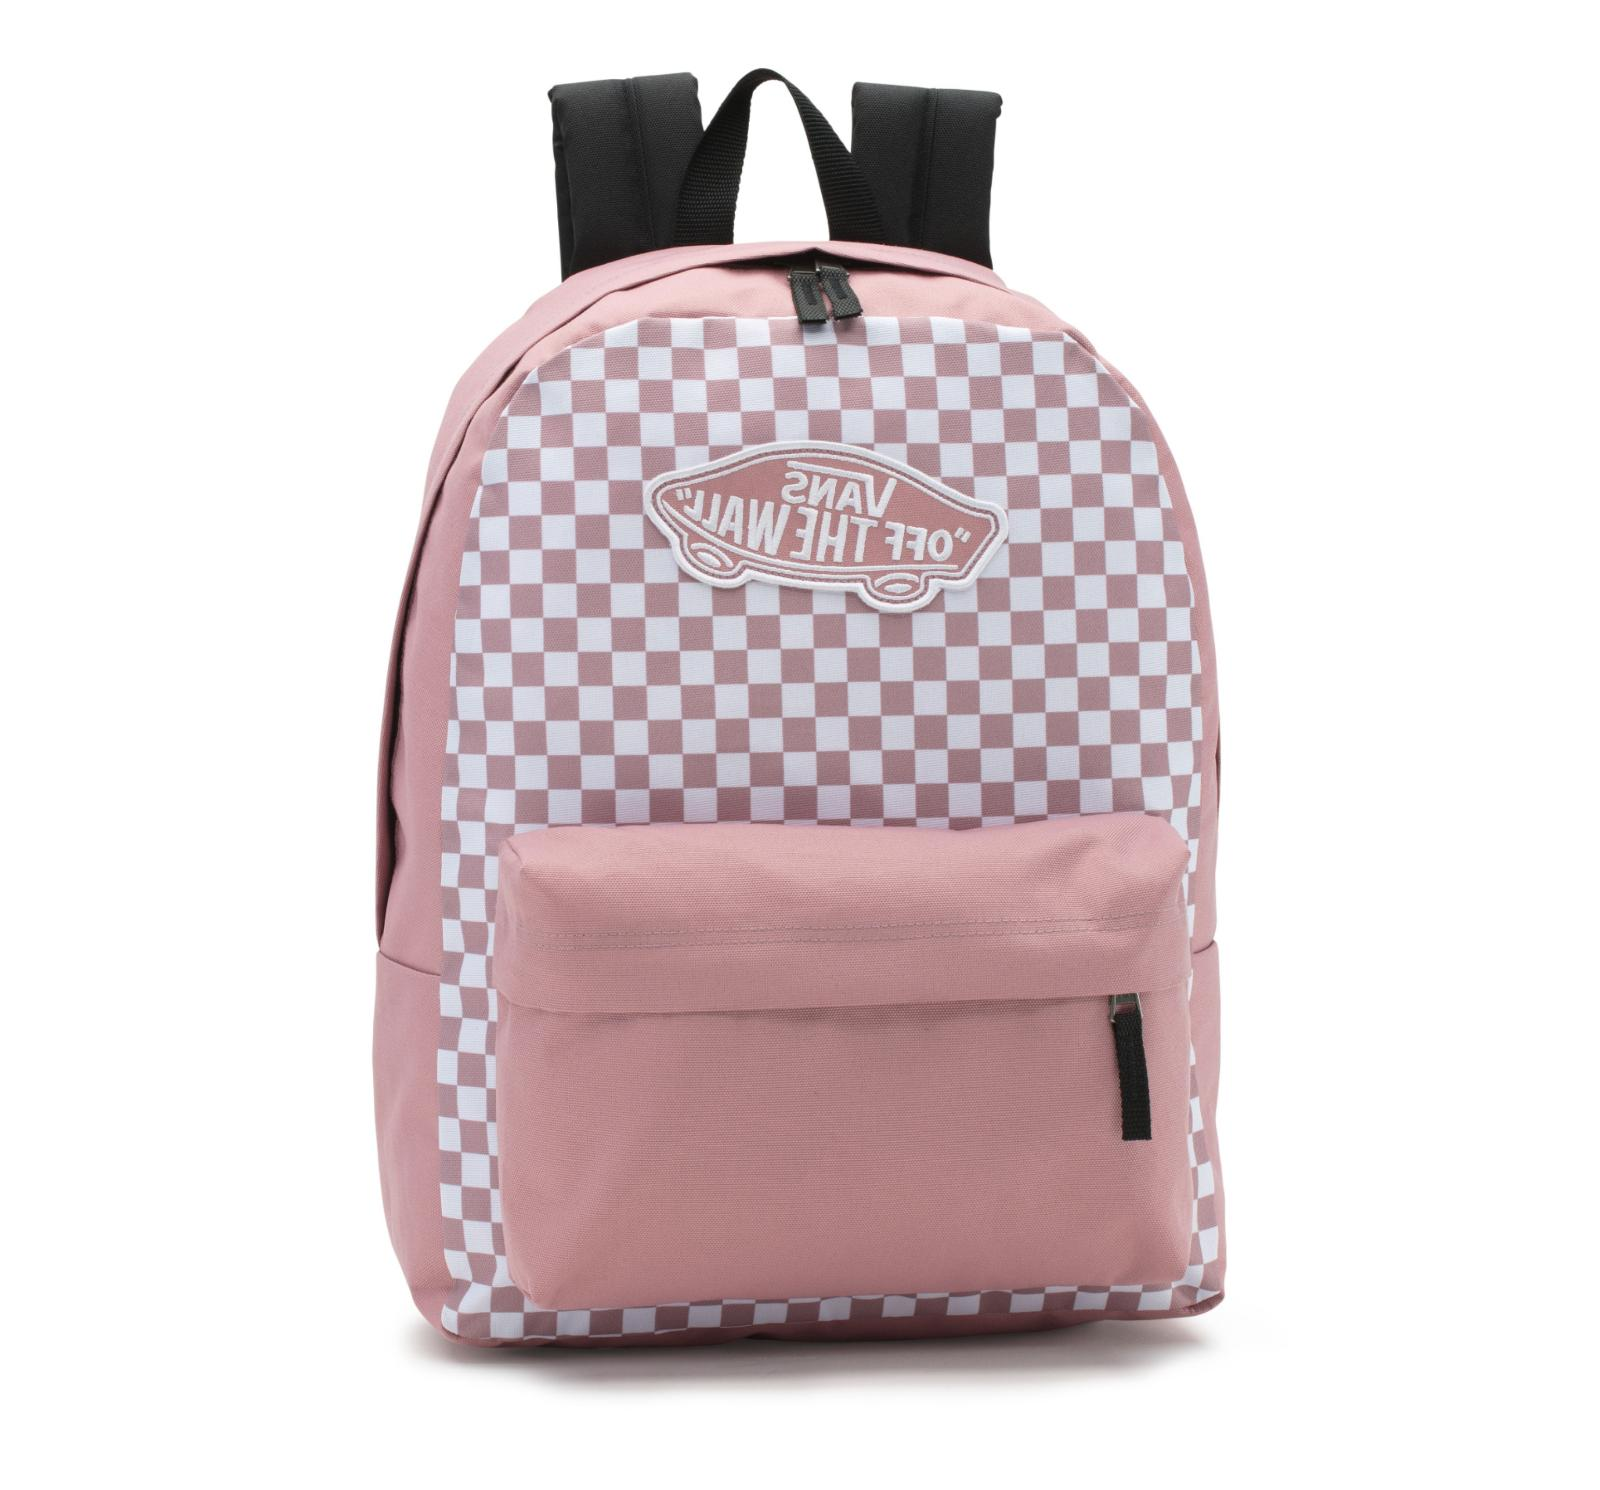 Vans Realm Printed Backpack OTW Nostalgia Rose Book Bag Pink